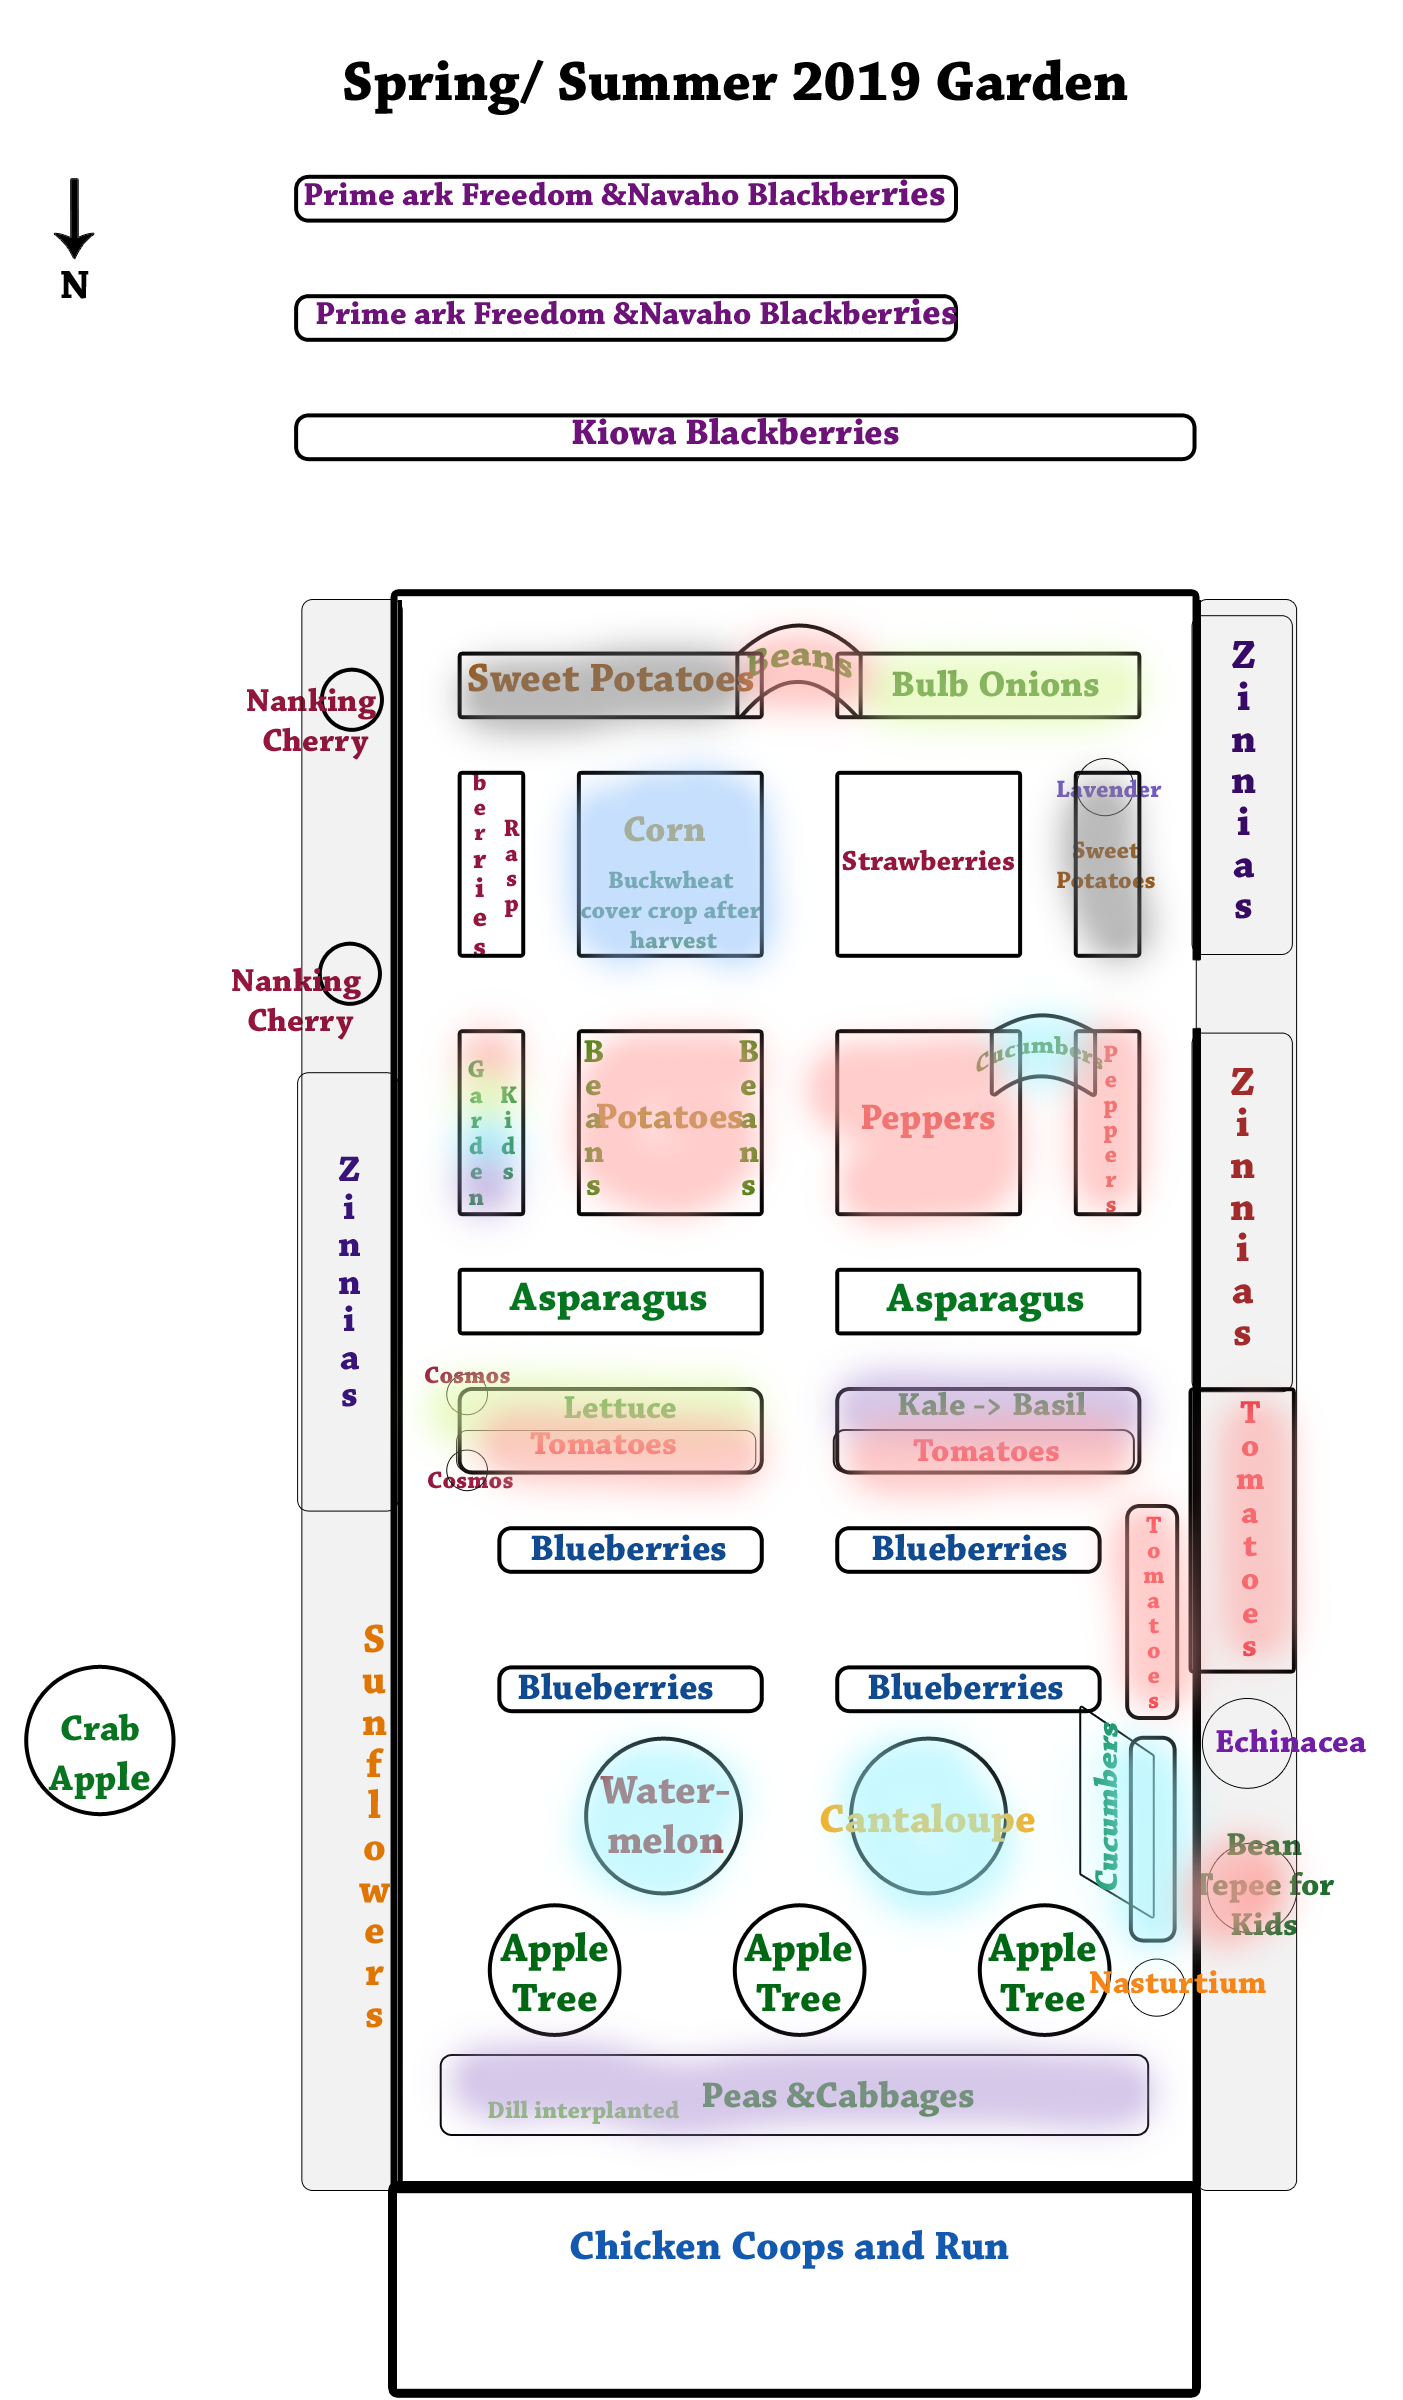 Garden-Plan--Spring-and-Summer-2019 Crop Rotation Colors.png